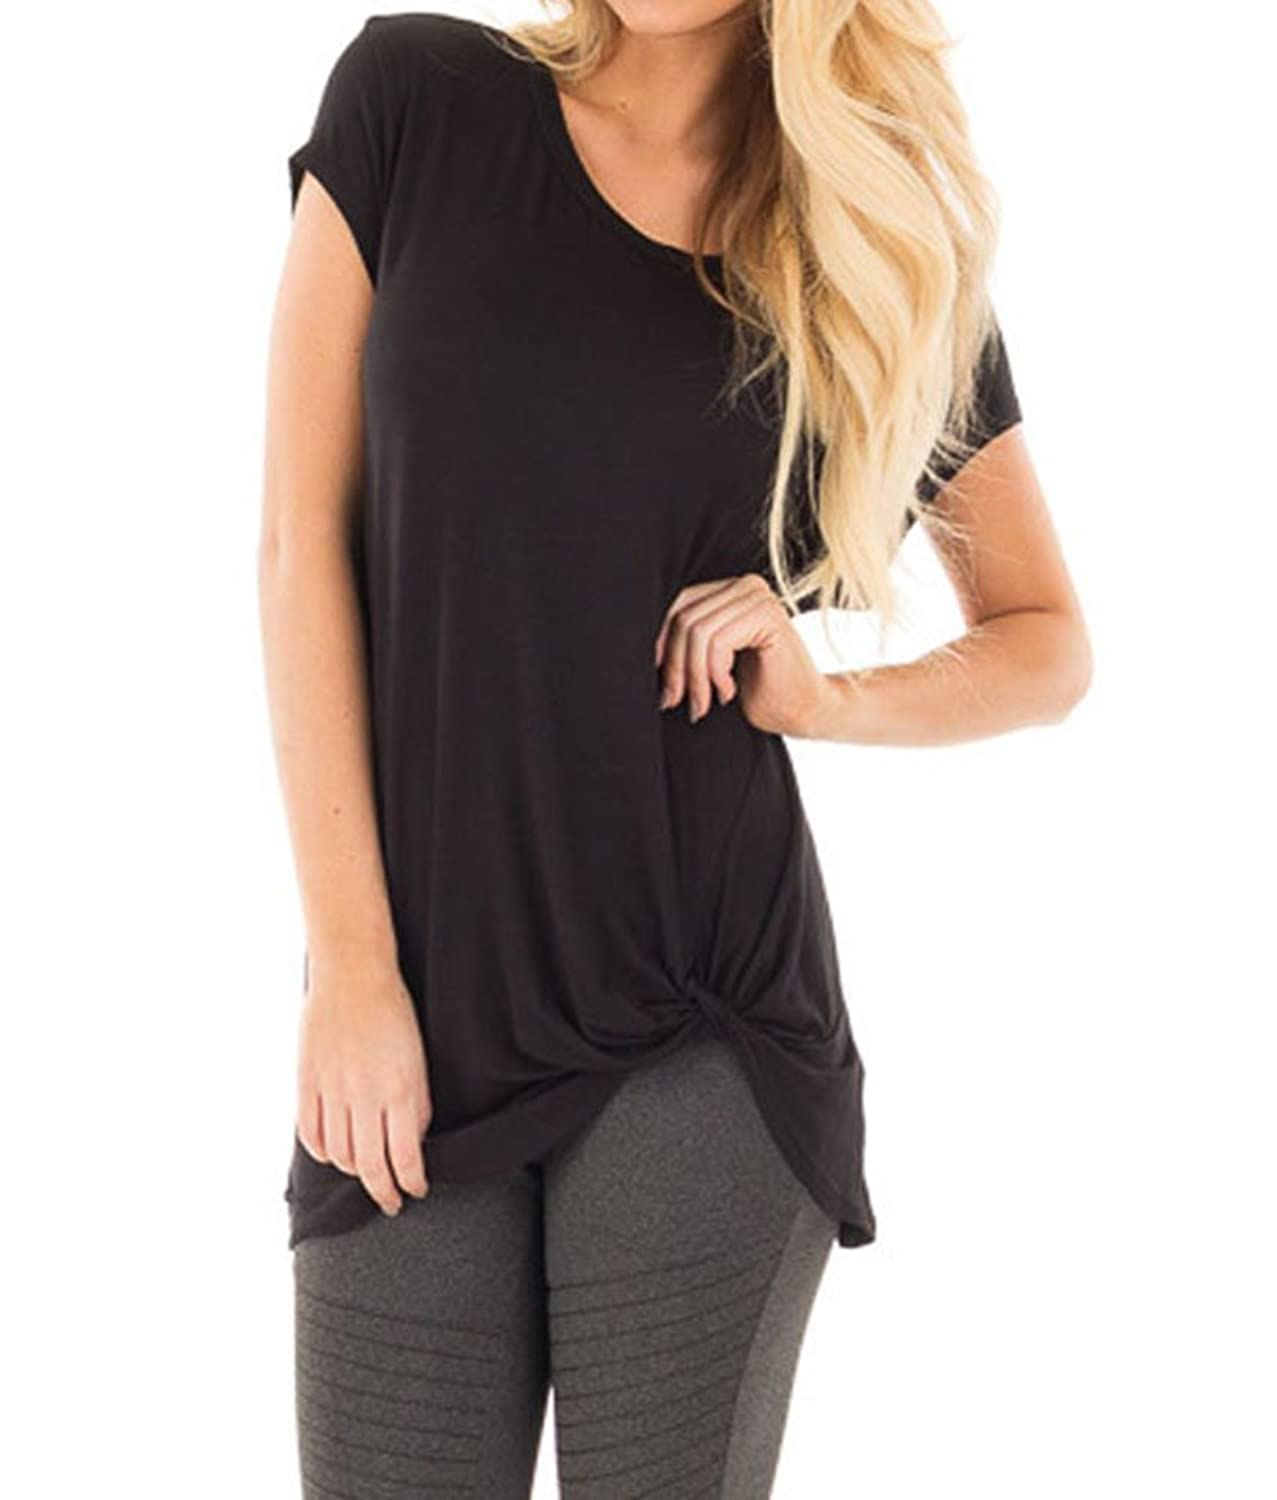 c5d62250e Imported The blouse is very casual design. Soft and comfortable, stretchy,  lightweight, breathable and skin-friendly. Features: Crew neck front knot  loose ...